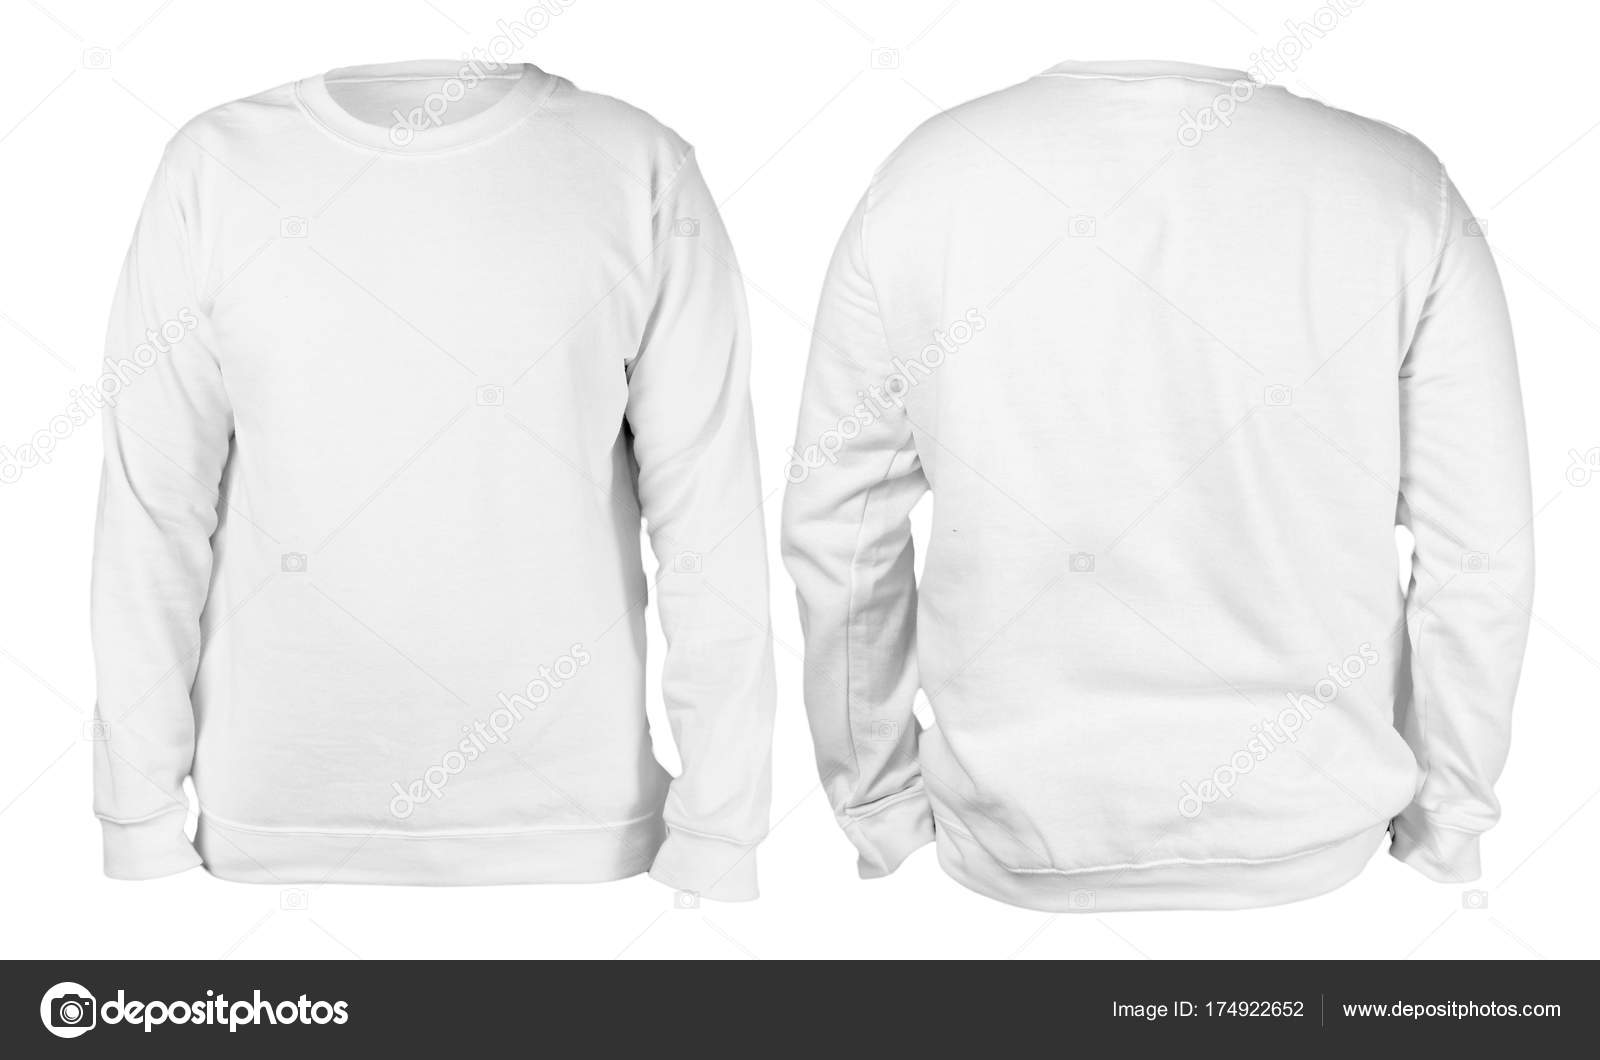 8612a628484b Blank sweatshirt mock up template, front, and back view, isolated, plain white  long sleeved sweater mockup. T-shirt design presentation. Jumper for print.